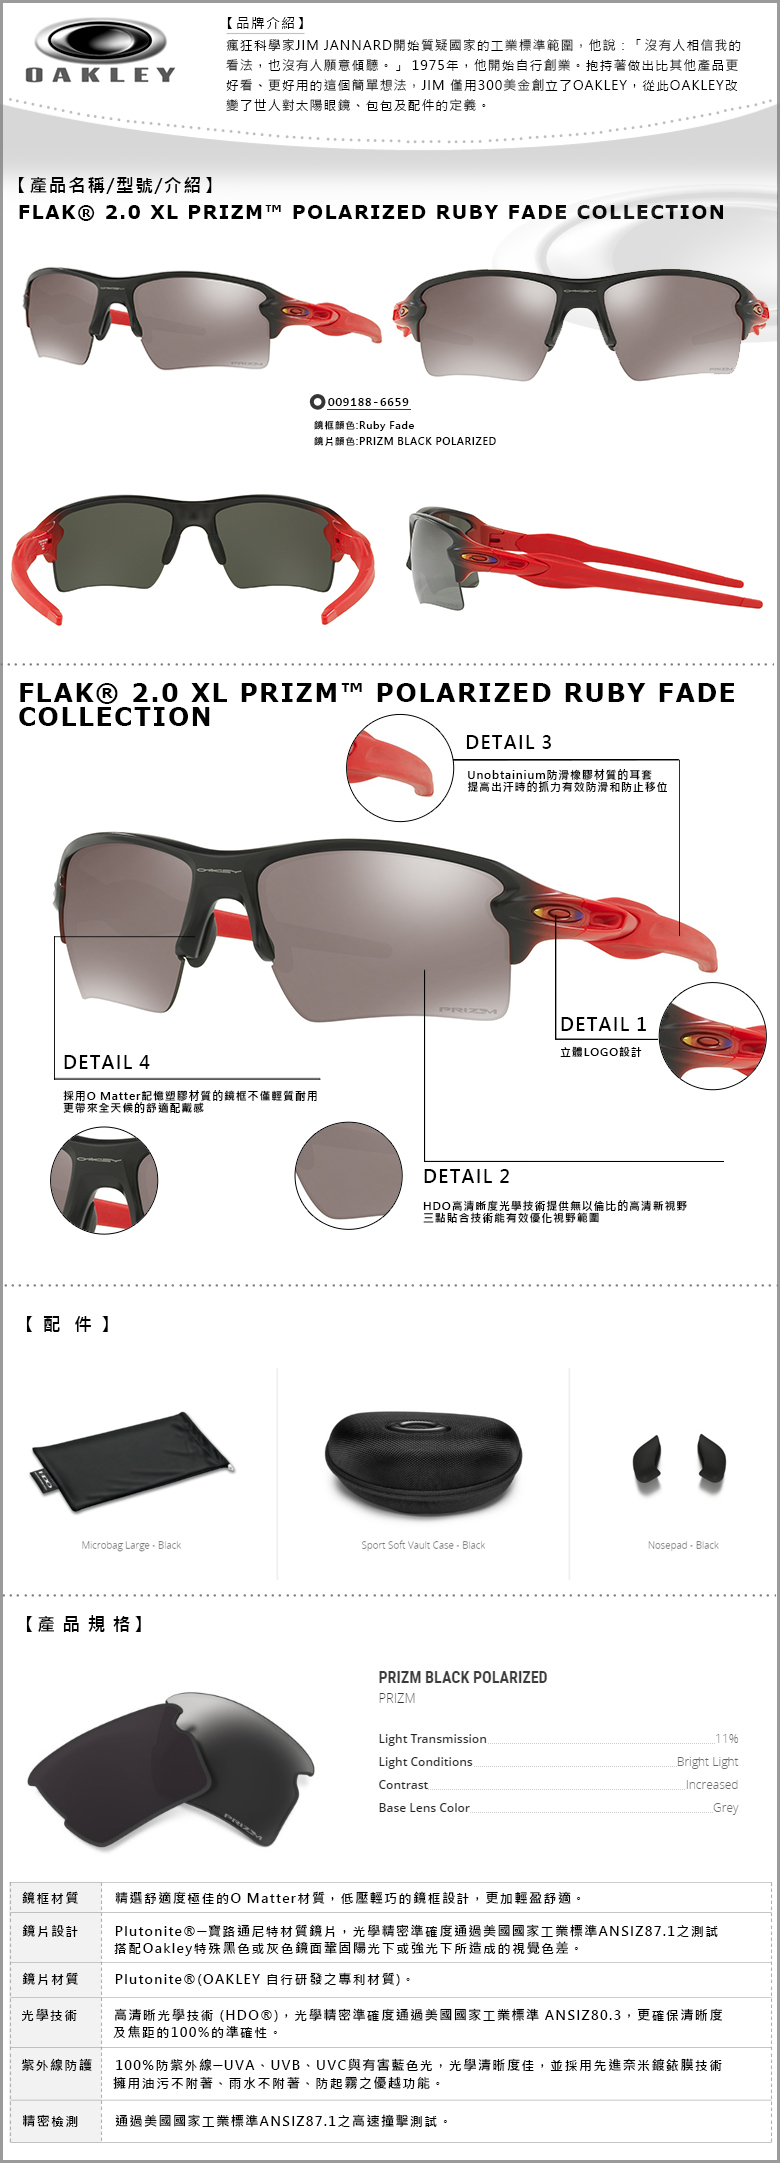 0c6a476f678 OAKLEY FLAK® 2.0 XL PRIZM™ POLARIZED RUBY FADE COLLECTION. Description   Shipping and Warranty  Return. 商品出貨流程